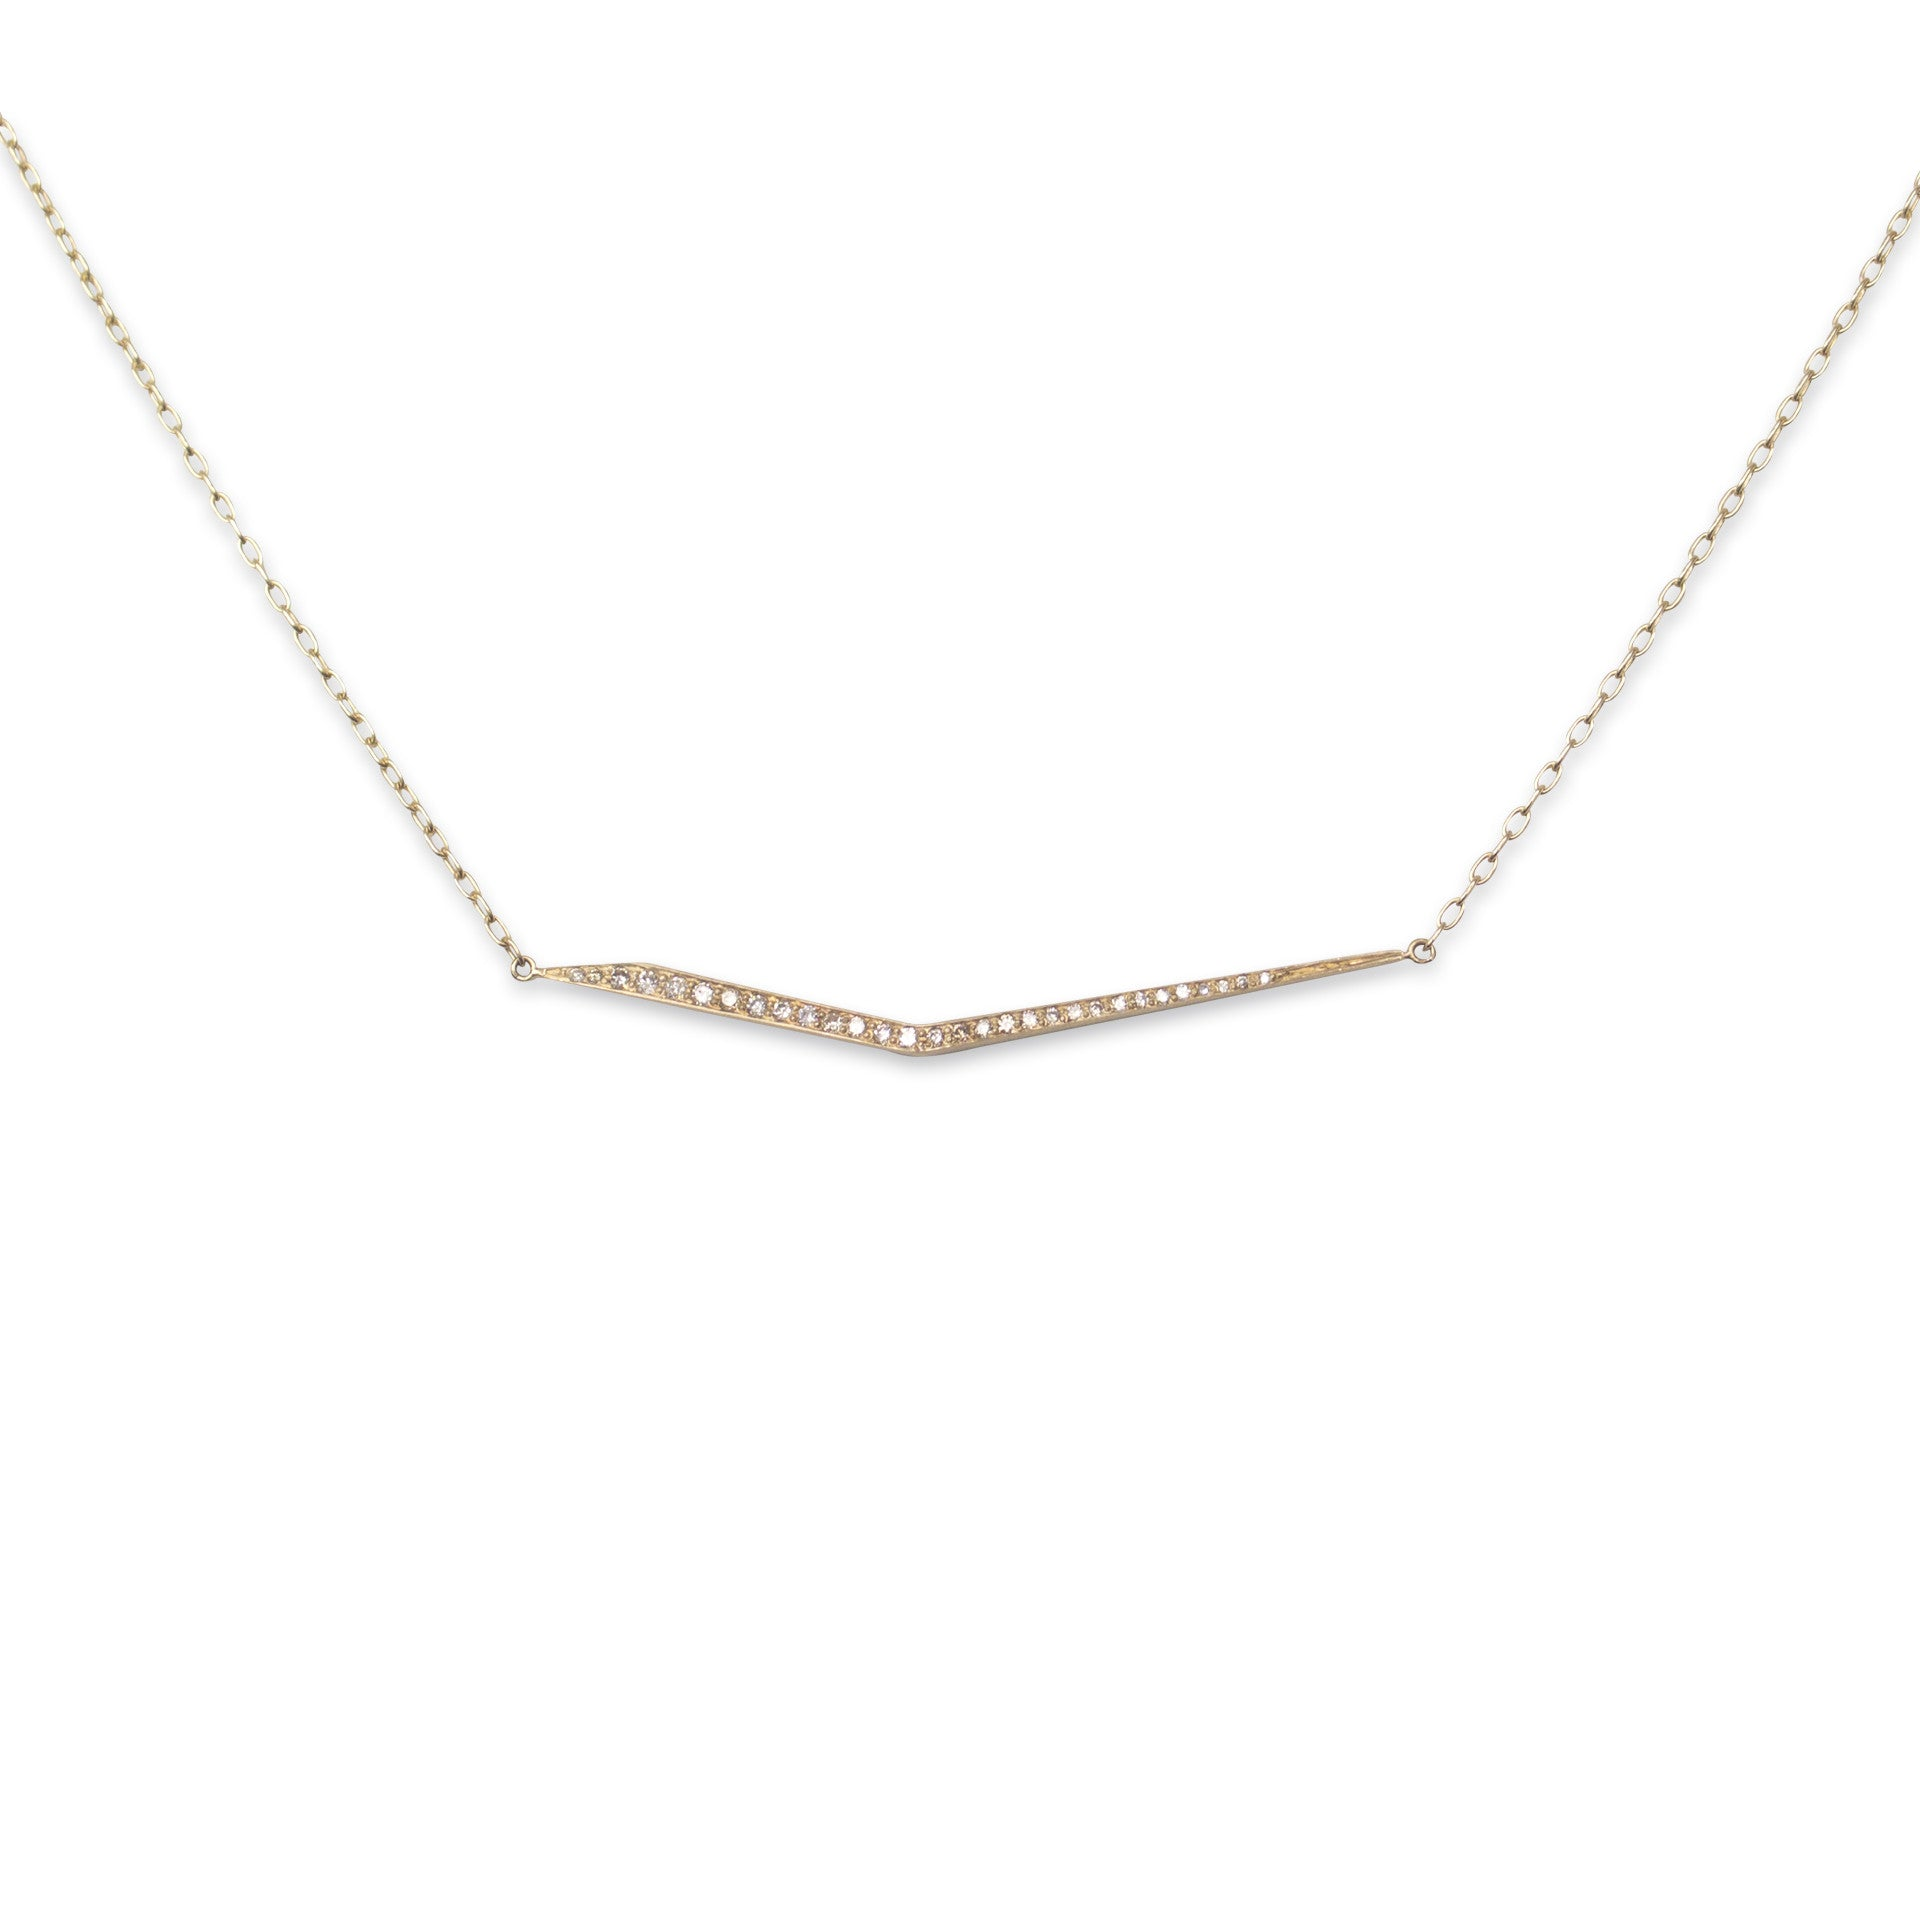 14k yellow gold with brown diamonds trace necklace